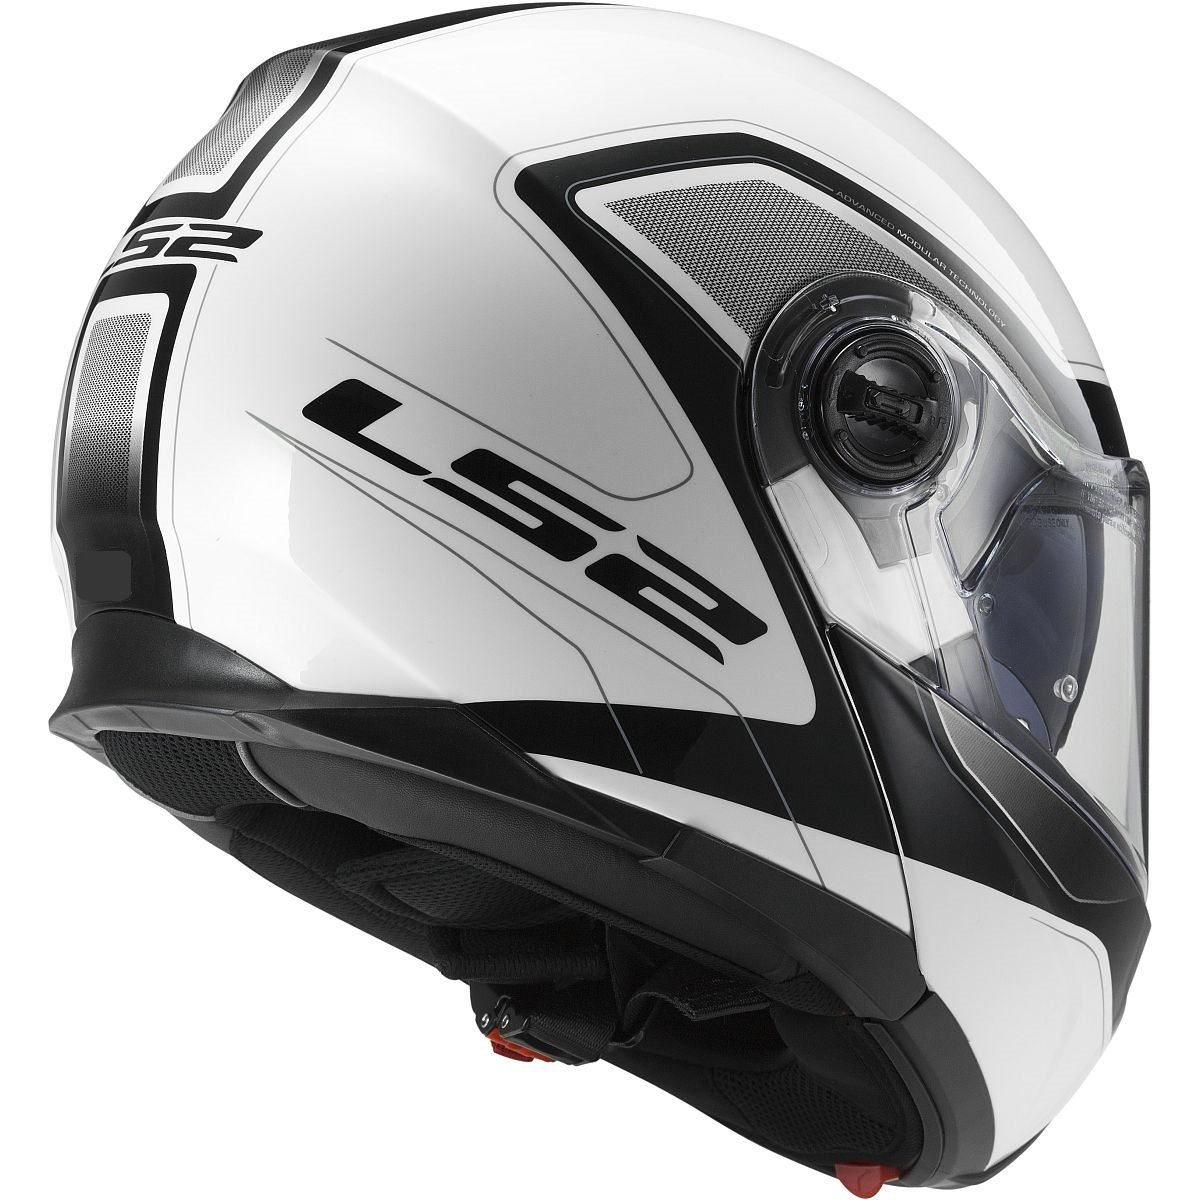 Amazon.com: LS2 Helmets Strobe Civik Modular Motorcycle Helmet with Sunshield (White, XXX-Large): Automotive